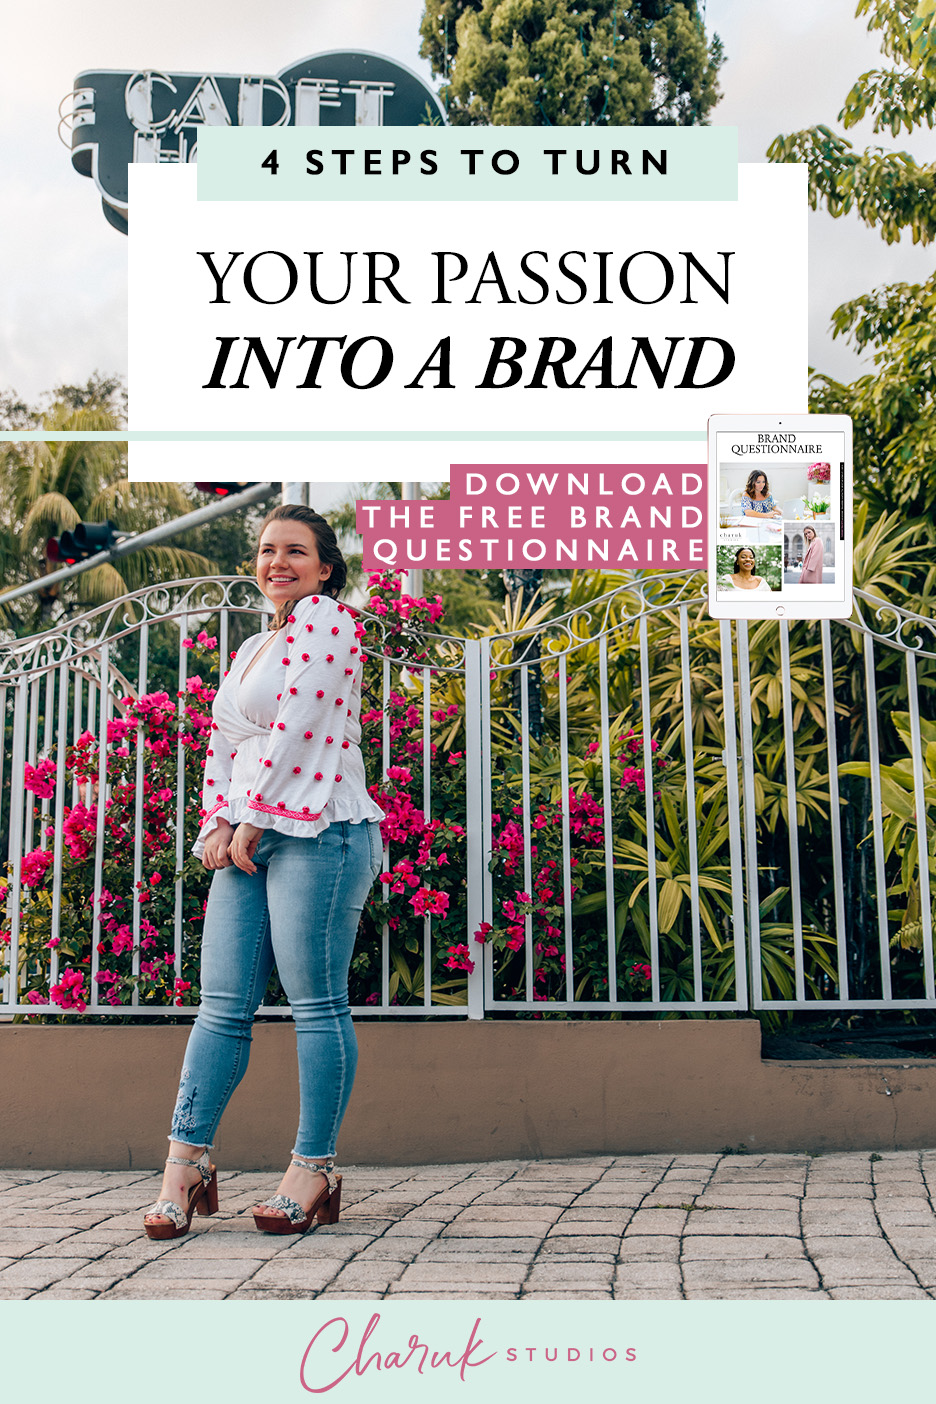 4 Steps to Turn Your Passion into a Brand by Charuk Studios.jpg